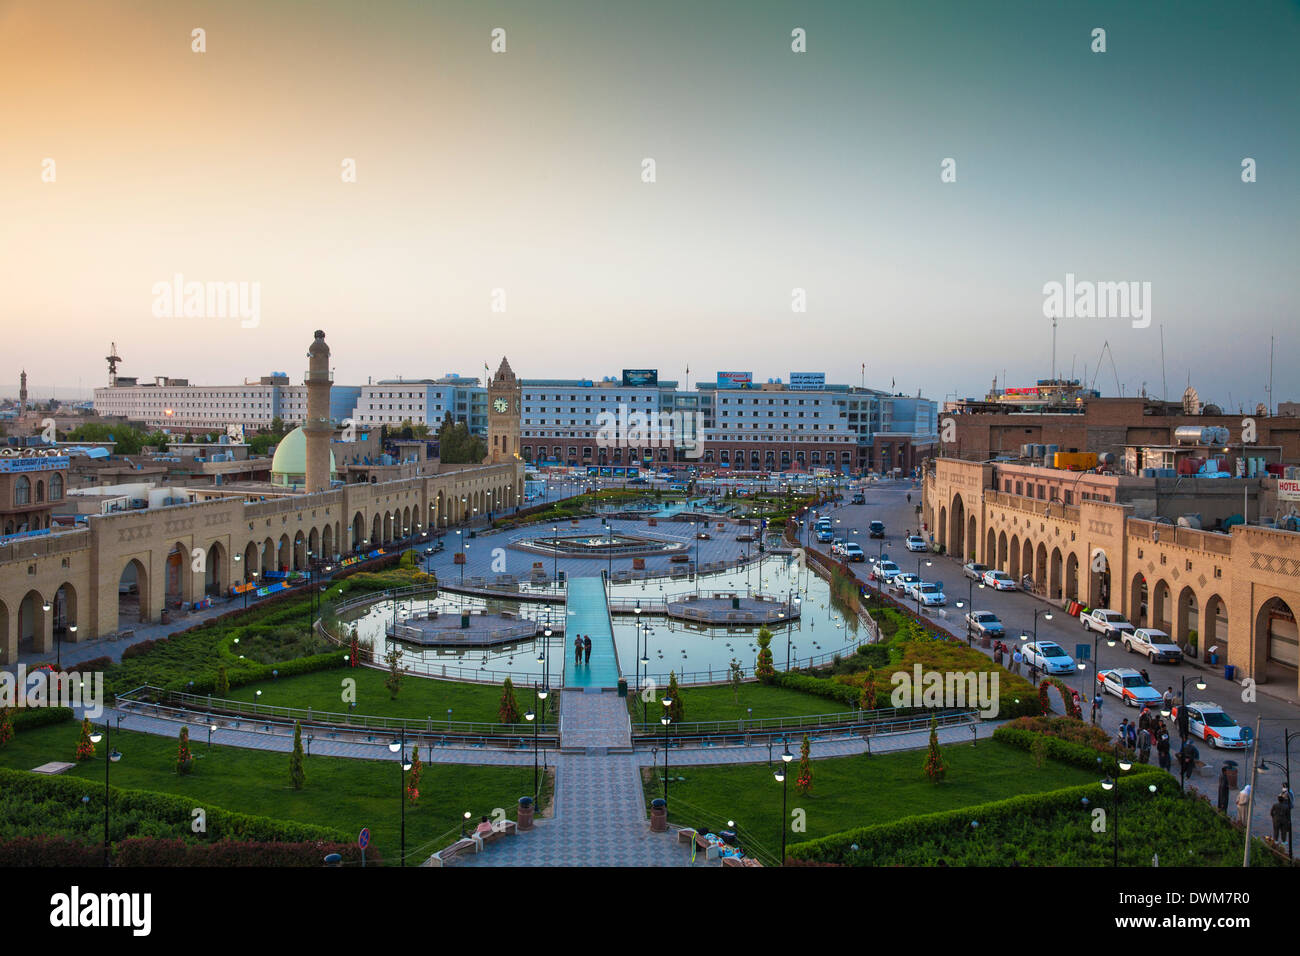 Shar Park and Qaysari Bazaars, Erbil, Kurdistan, Iraq, Middle East - Stock Image